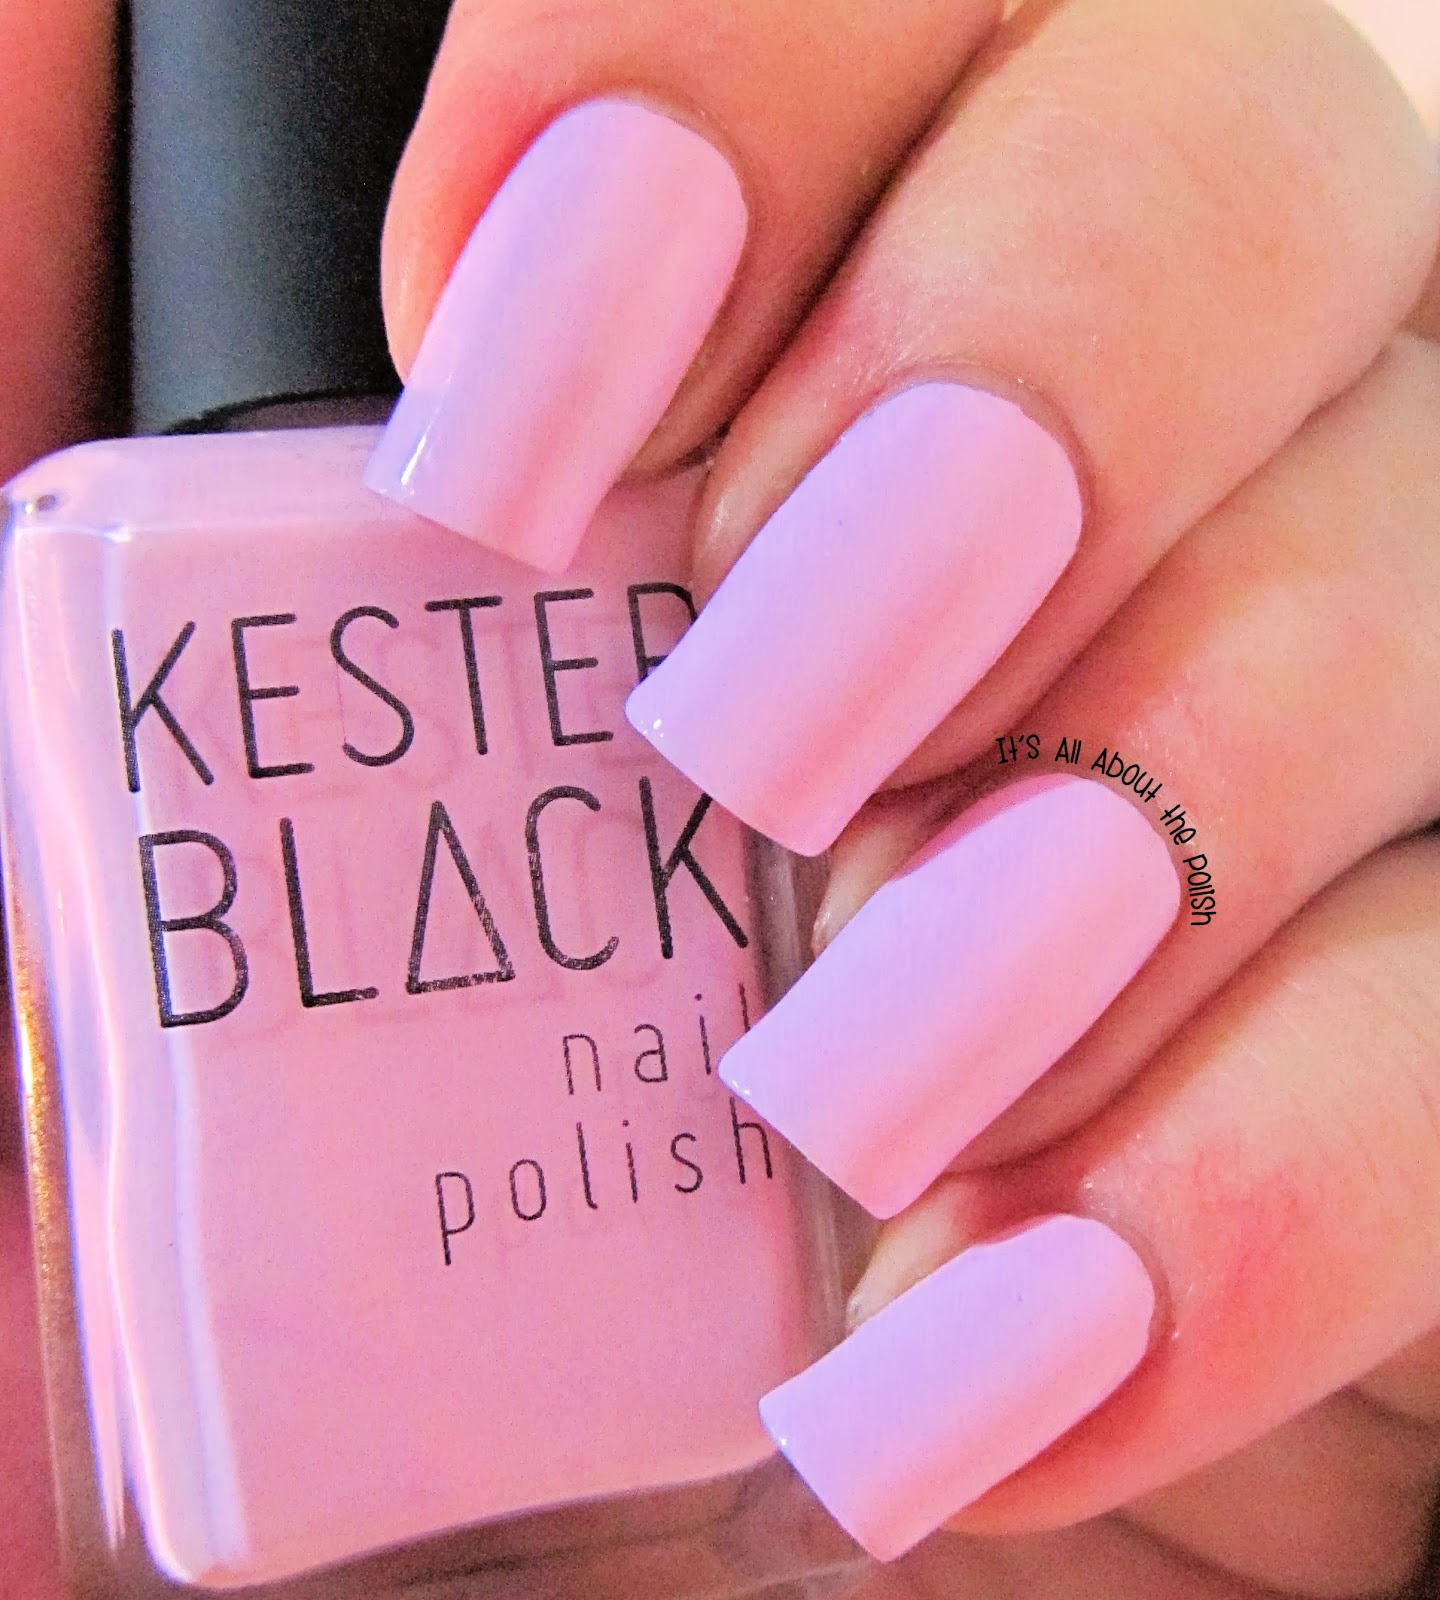 It's All About The Polish: Kester Black